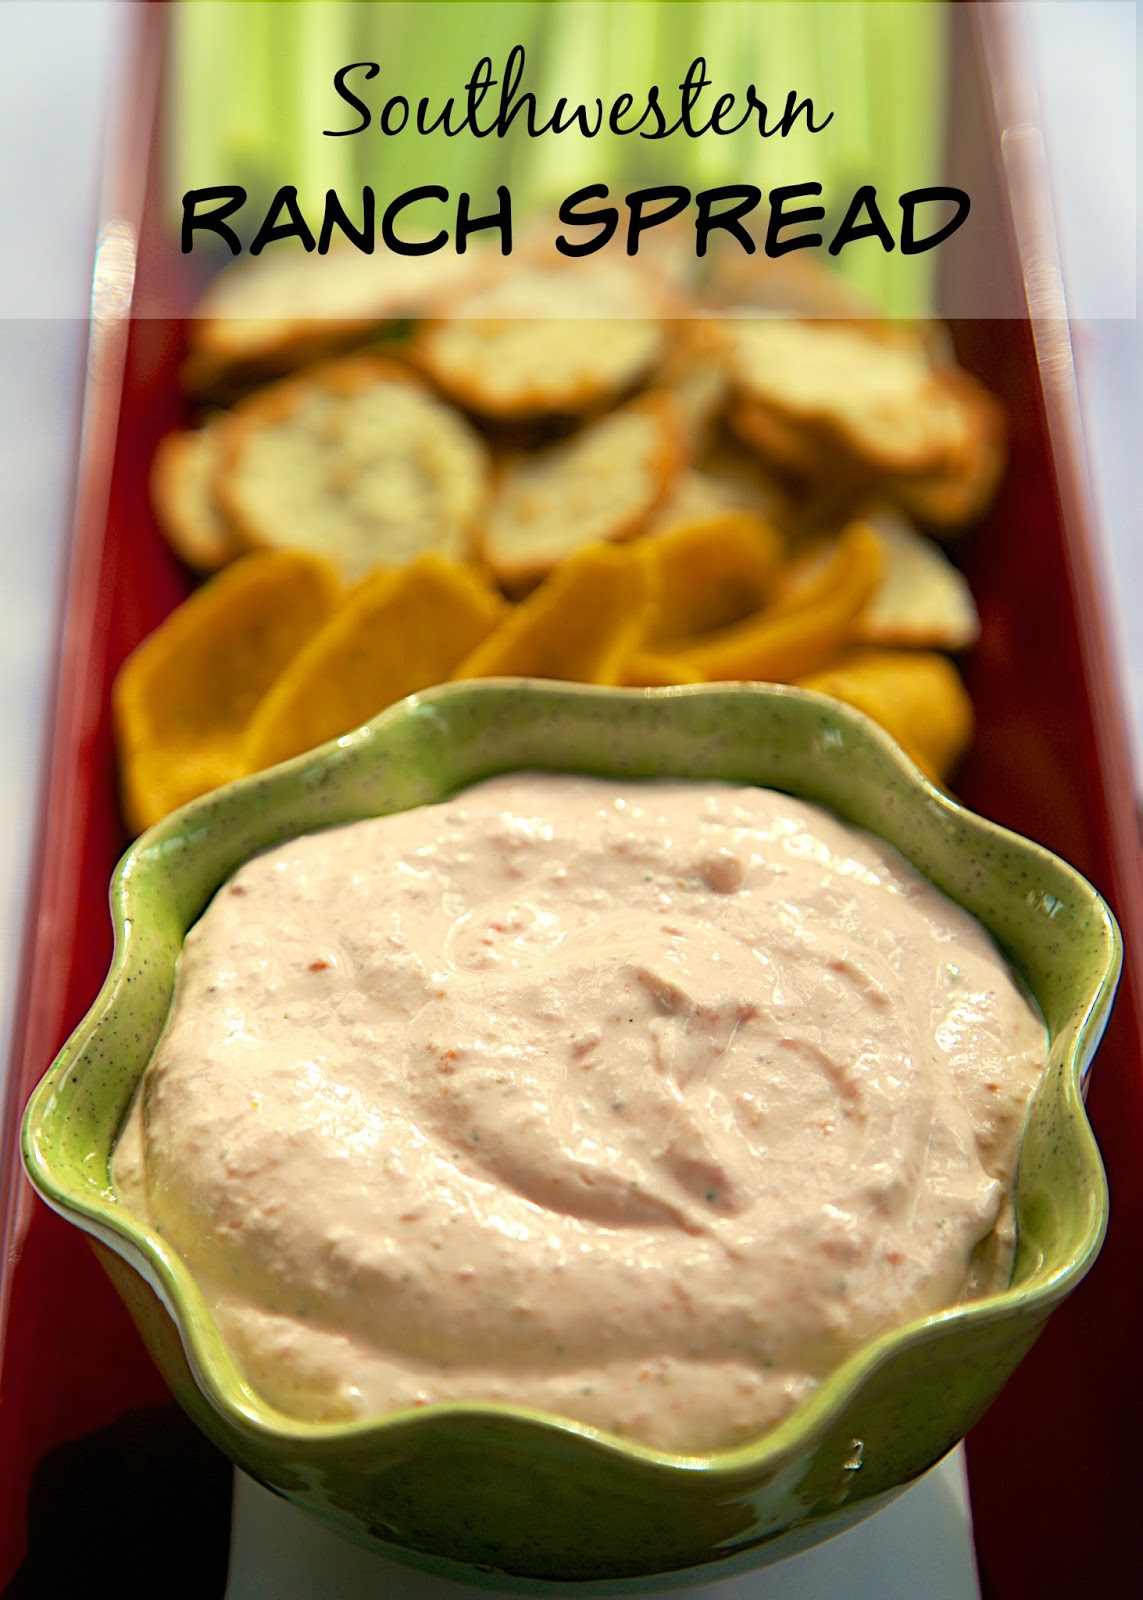 Southwestern Ranch Spread - quick dip for chips or veggies - cream cheese, sour cream, ranch and Rotel. Can make ahead of time and refrigerate for later. Great as a dip or topping for a baked potato. We LOVE this easy Mexican dip recipe!